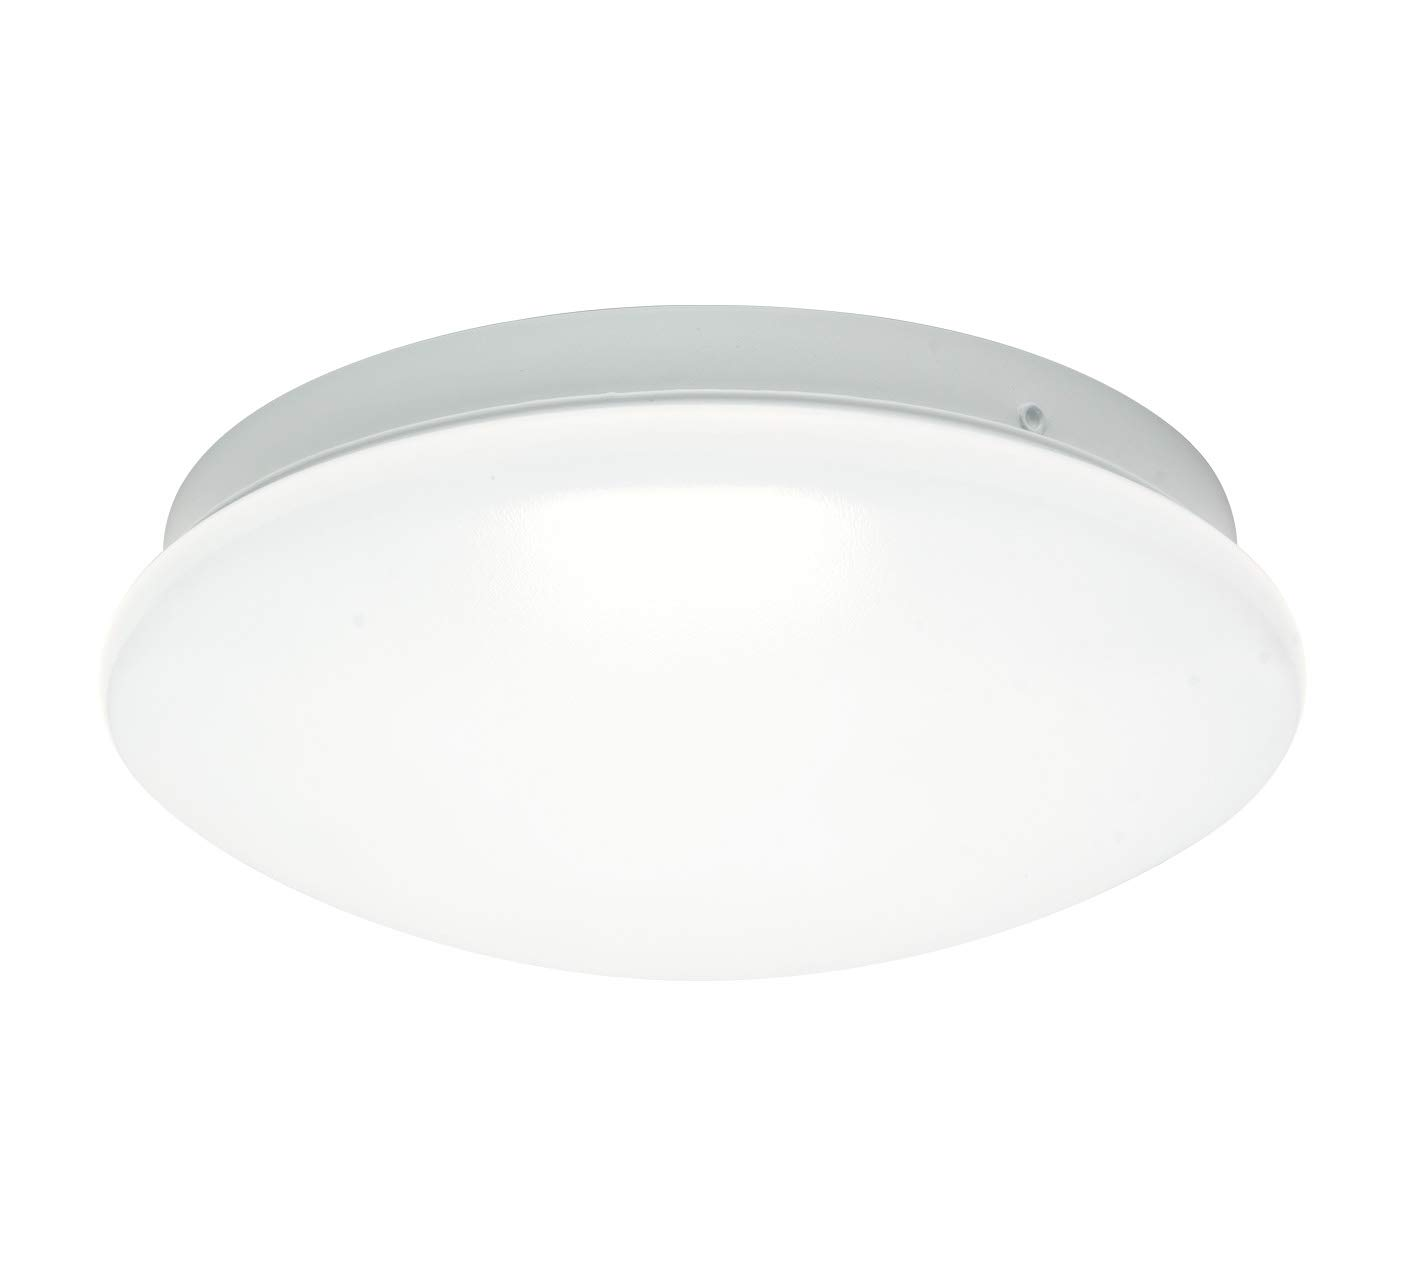 """OSTWIN 8"""" LED Puff Round Flush mount Ceiling Light MS Series 12W (75 Watt eq.), Dimmable, 5000K (Daylight), 900 Lumens, White Finish with Acrylic white shade, ETL and ENERGY STAR listed"""